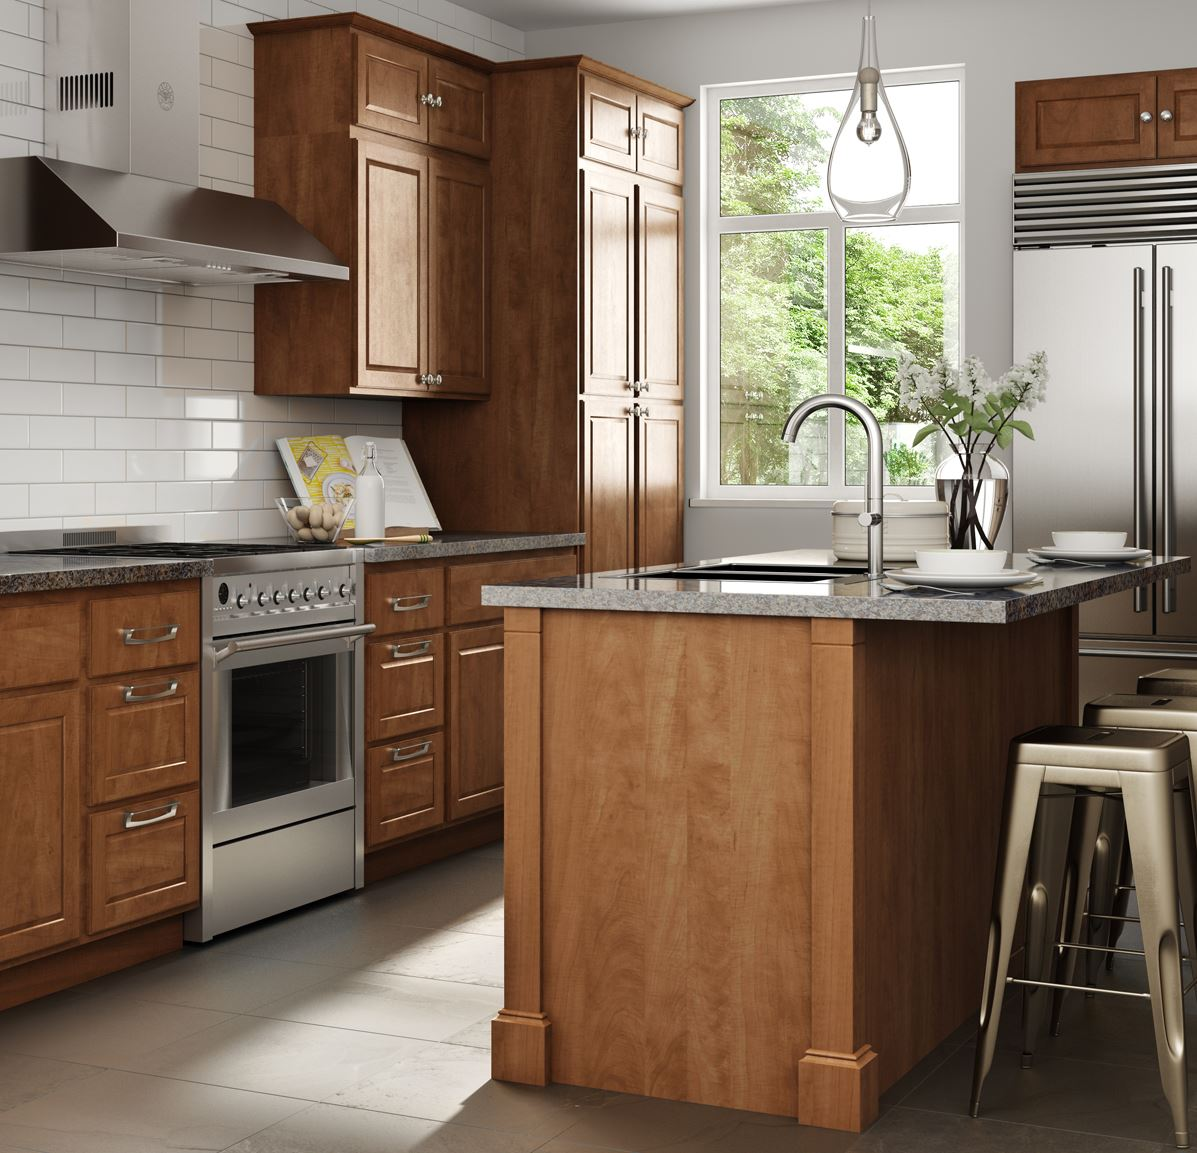 Kitchen Cabinets: Madison Base Cabinets In Cognac